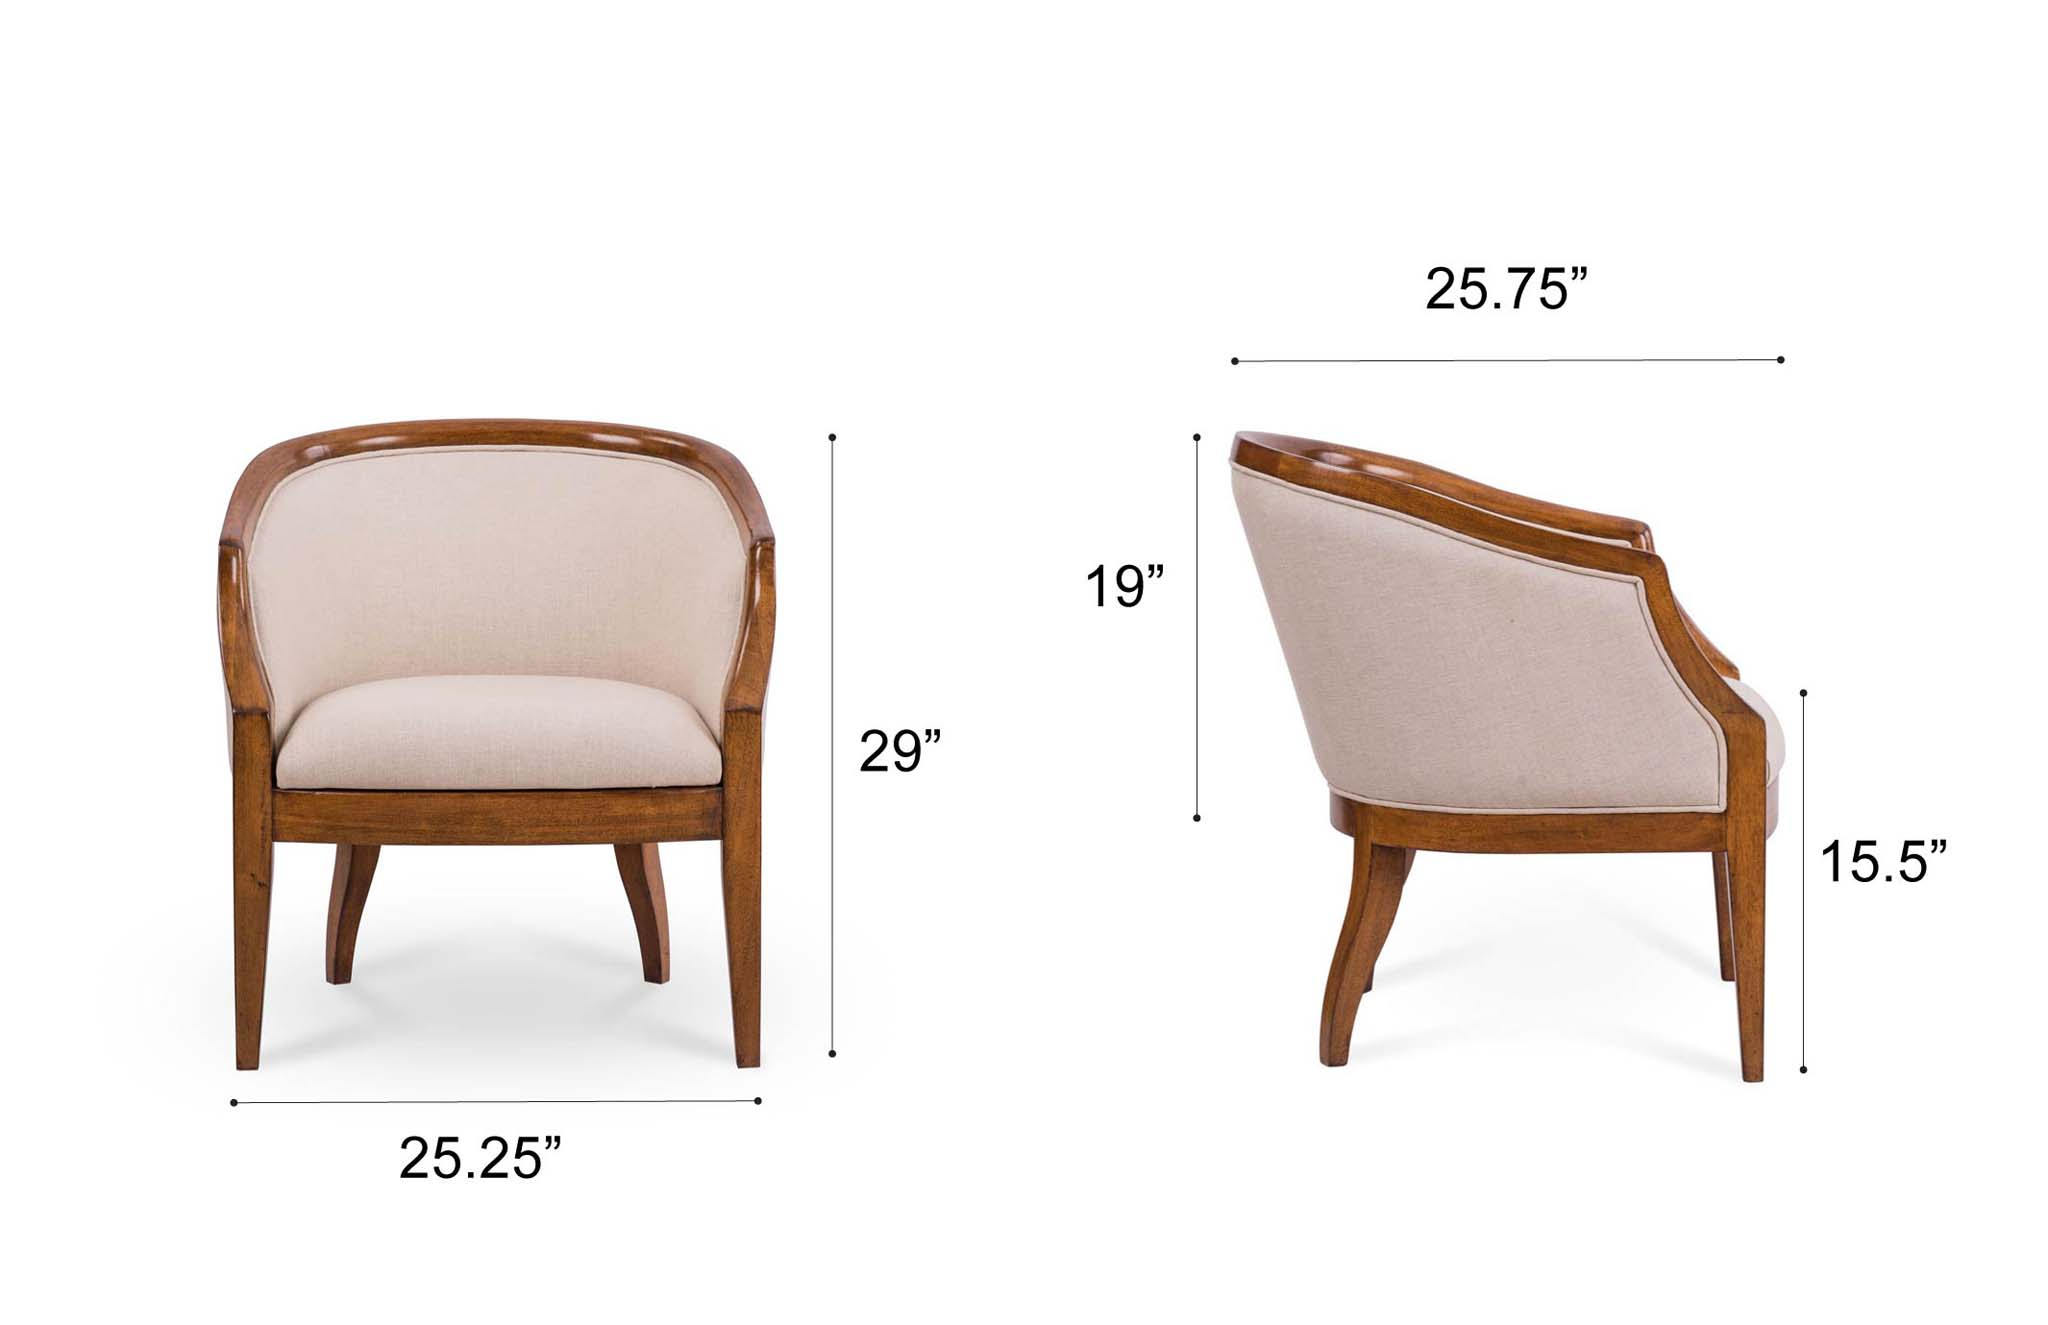 Dowel Furniture Claire Chair Dimensions